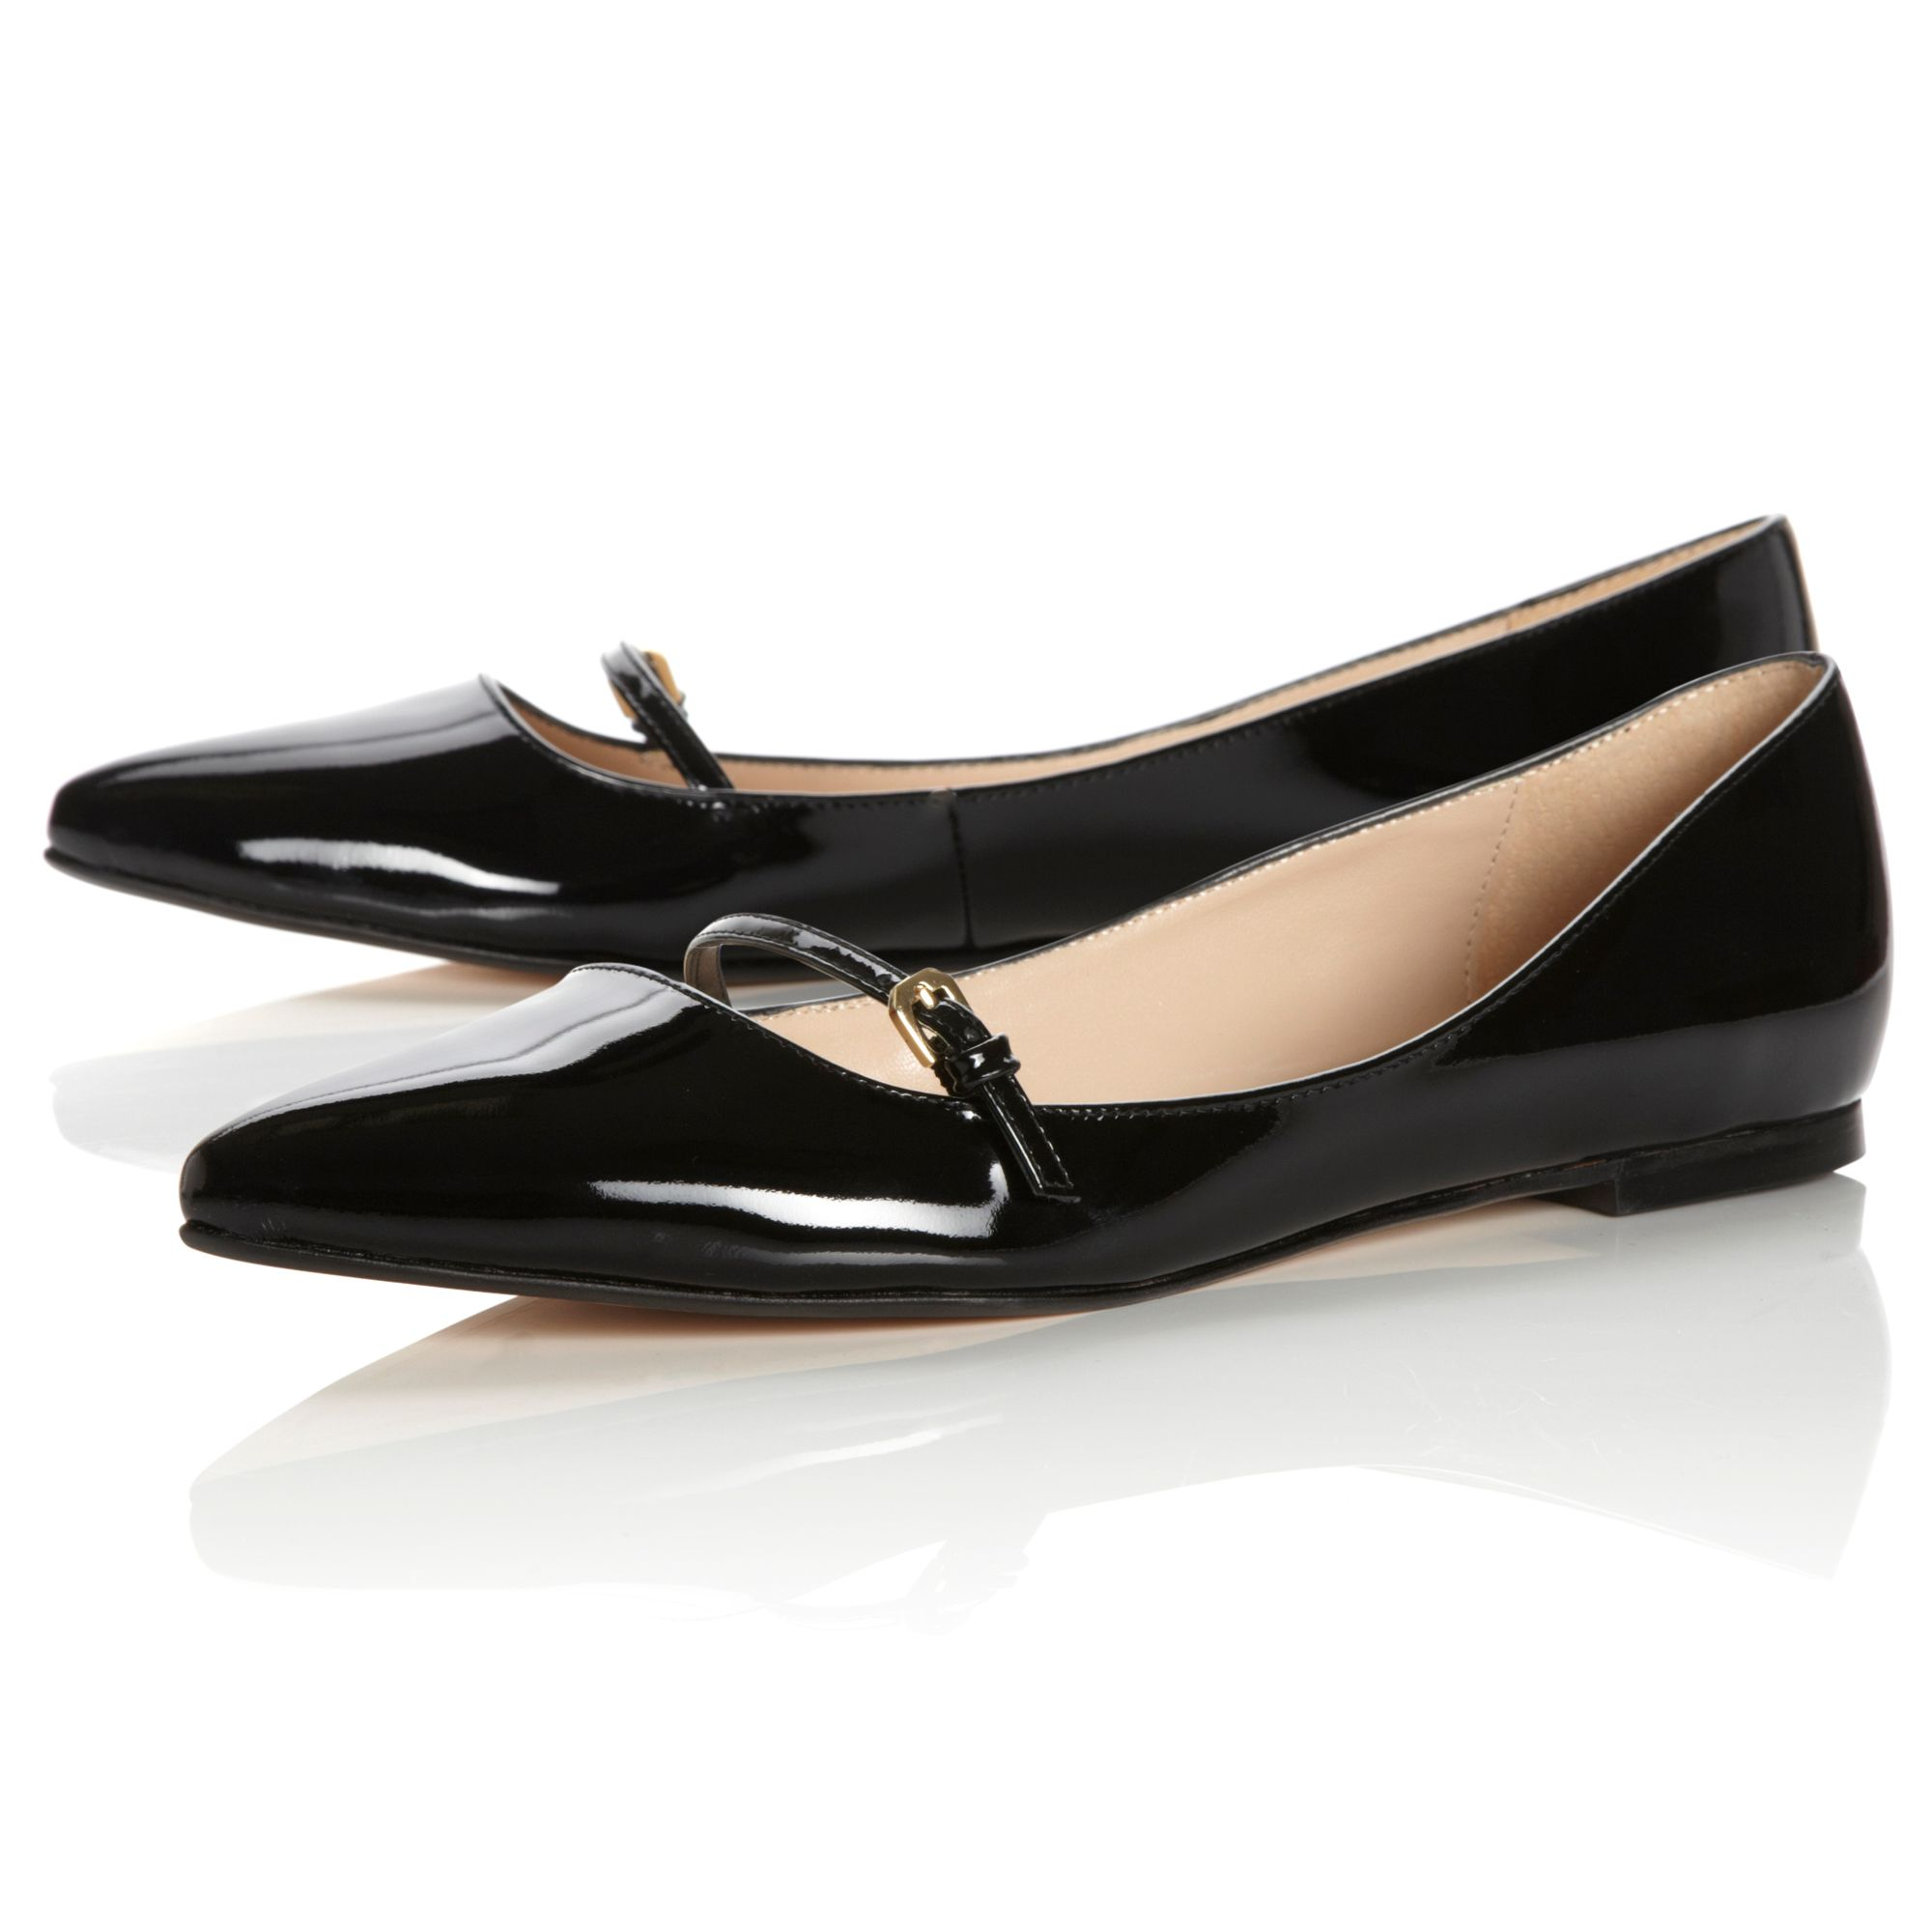 Black Patent Leather Shoes Play